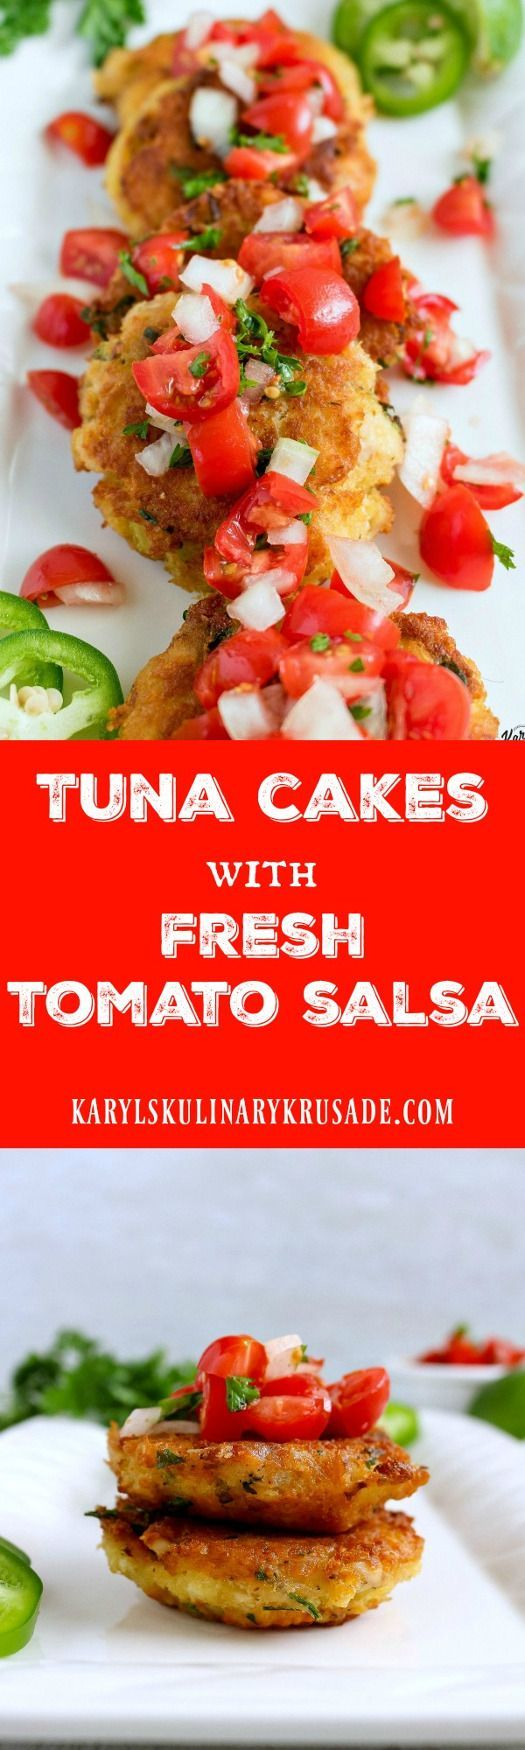 Tuna Cakes with Fresh Tomato Salsa. Perfect for a lunch or light dinner, these tuna cakes will satisfy your appetite. The pan-fried tuna cakes are topped with a delicious, light and refreshing tomato salsa that gets better as it sits. #tuna #panfried #seafood #tomatoes #salsa #recipe #foodie #foodblog #karylskulinarykrusade